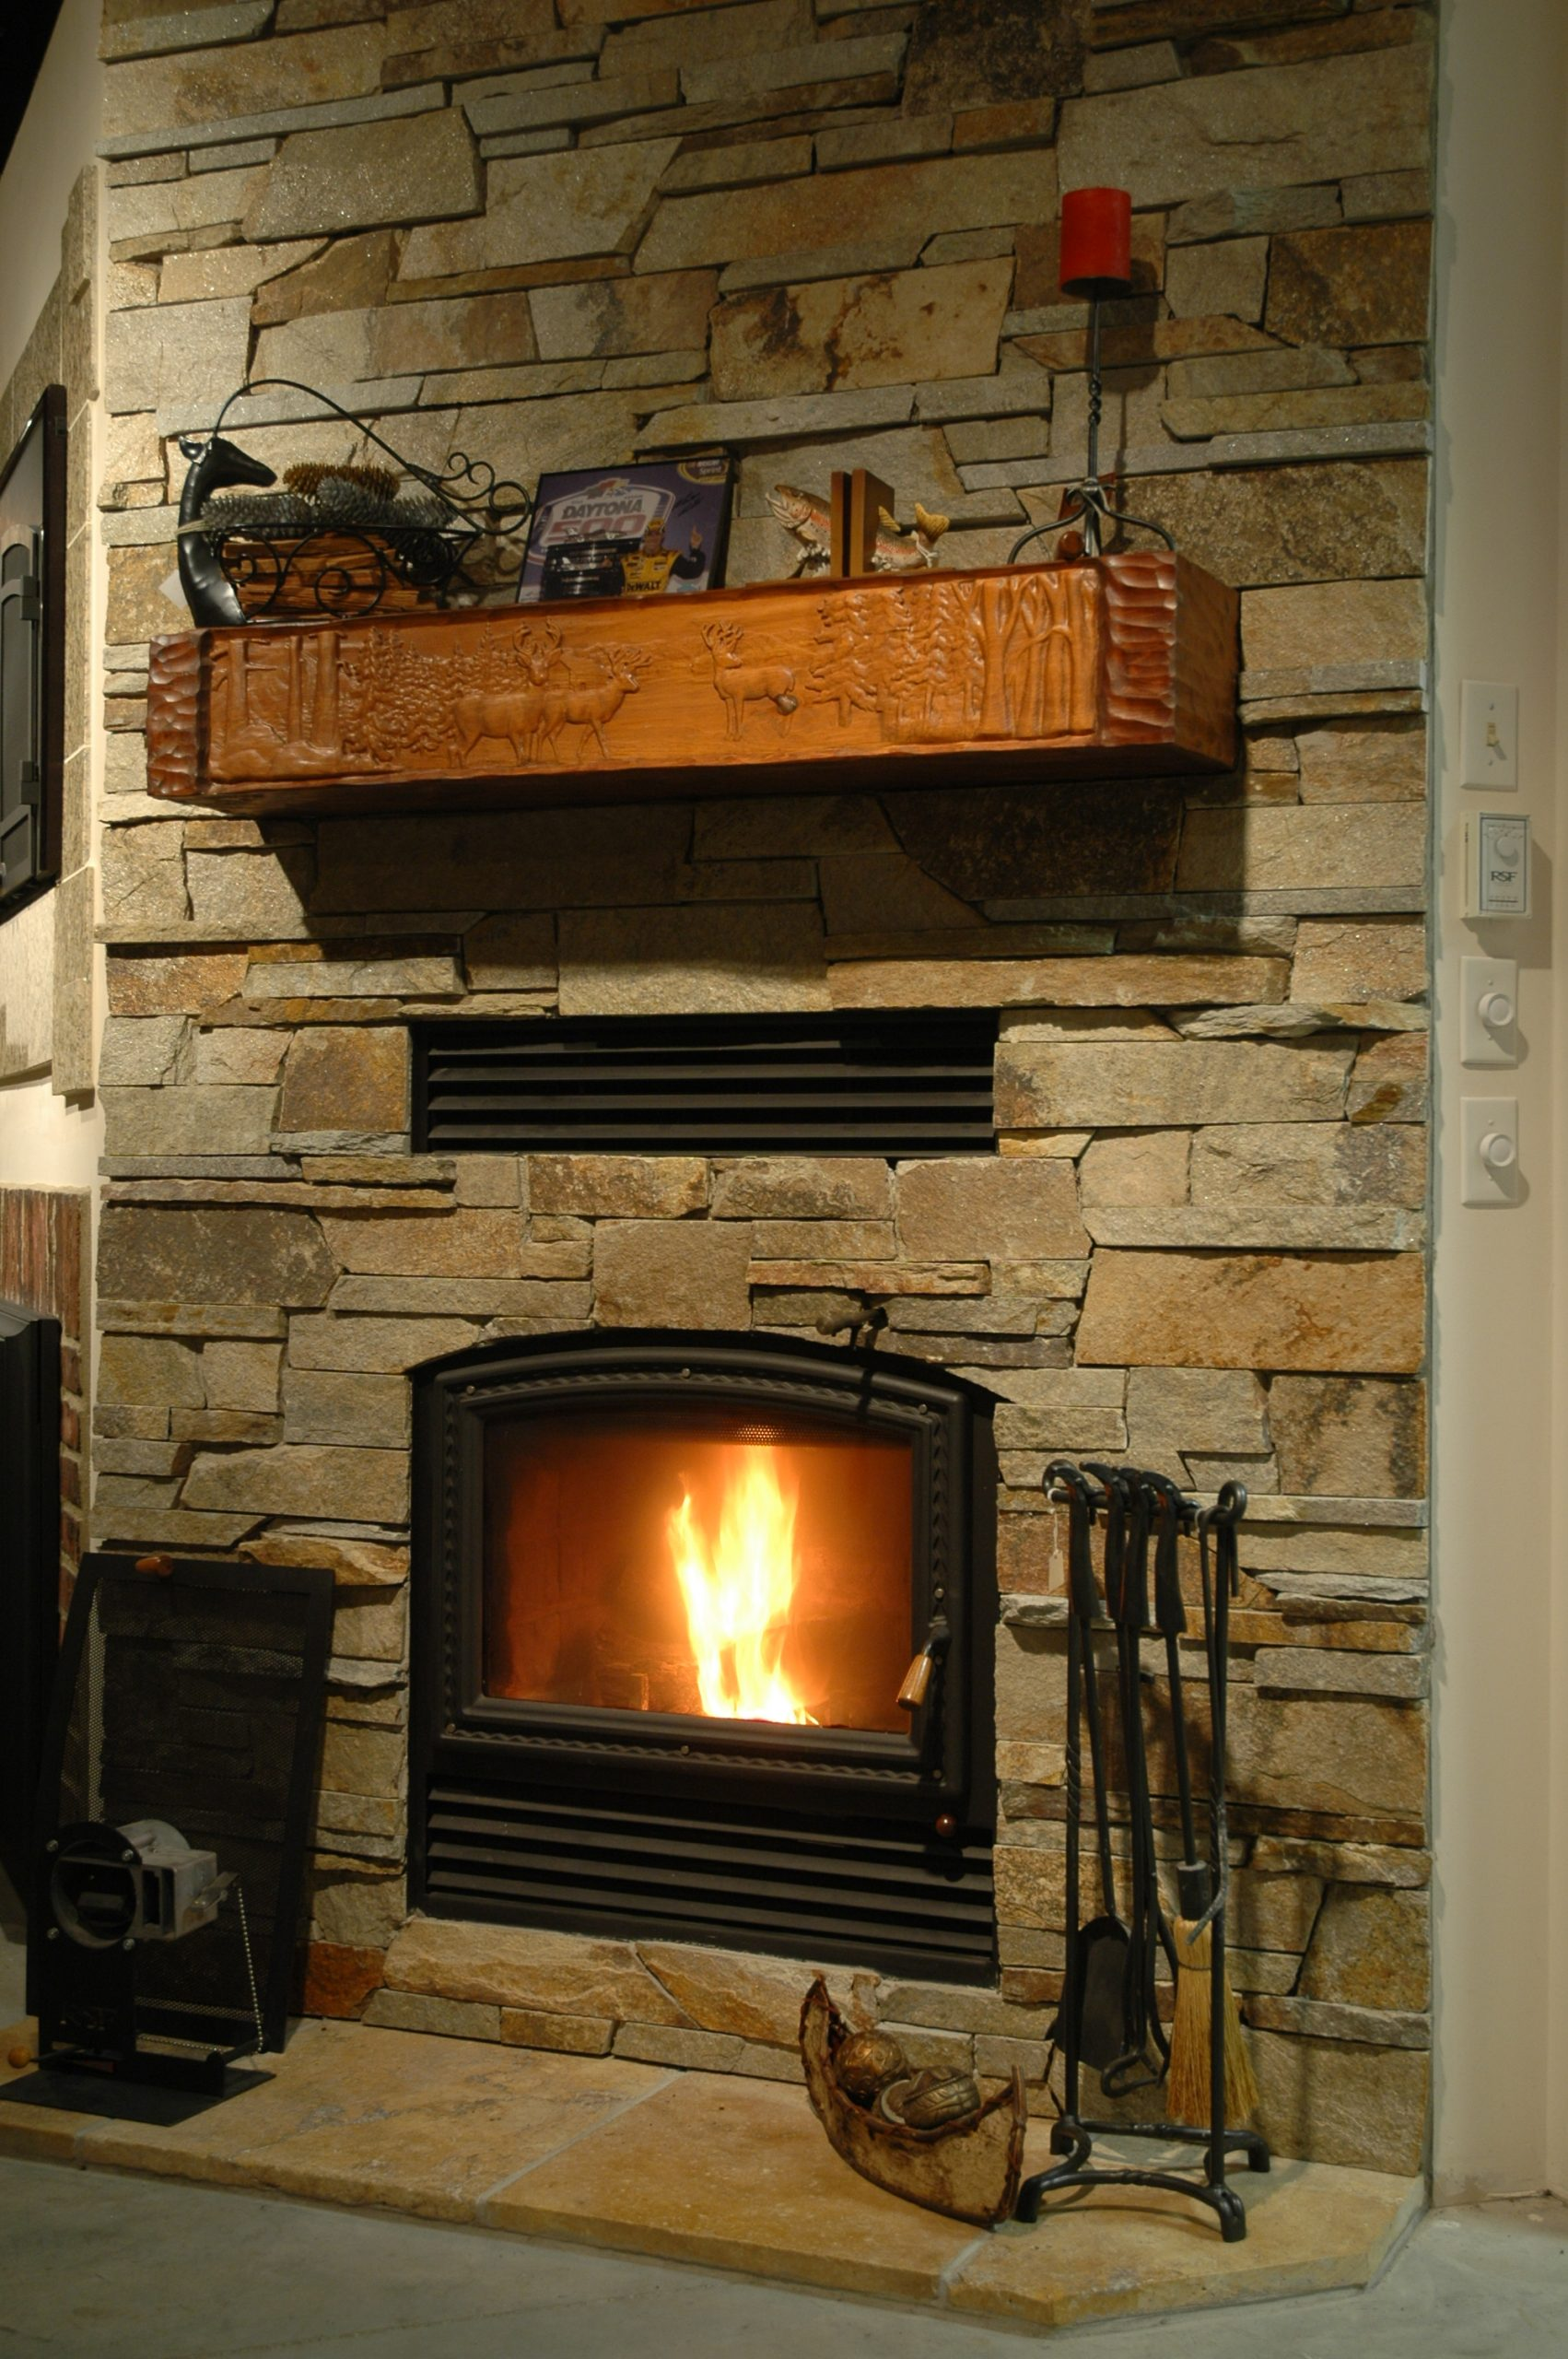 Astria Fireplace Best Of astria 42 Wood Burning Fireplace Big Walls Cold Climates